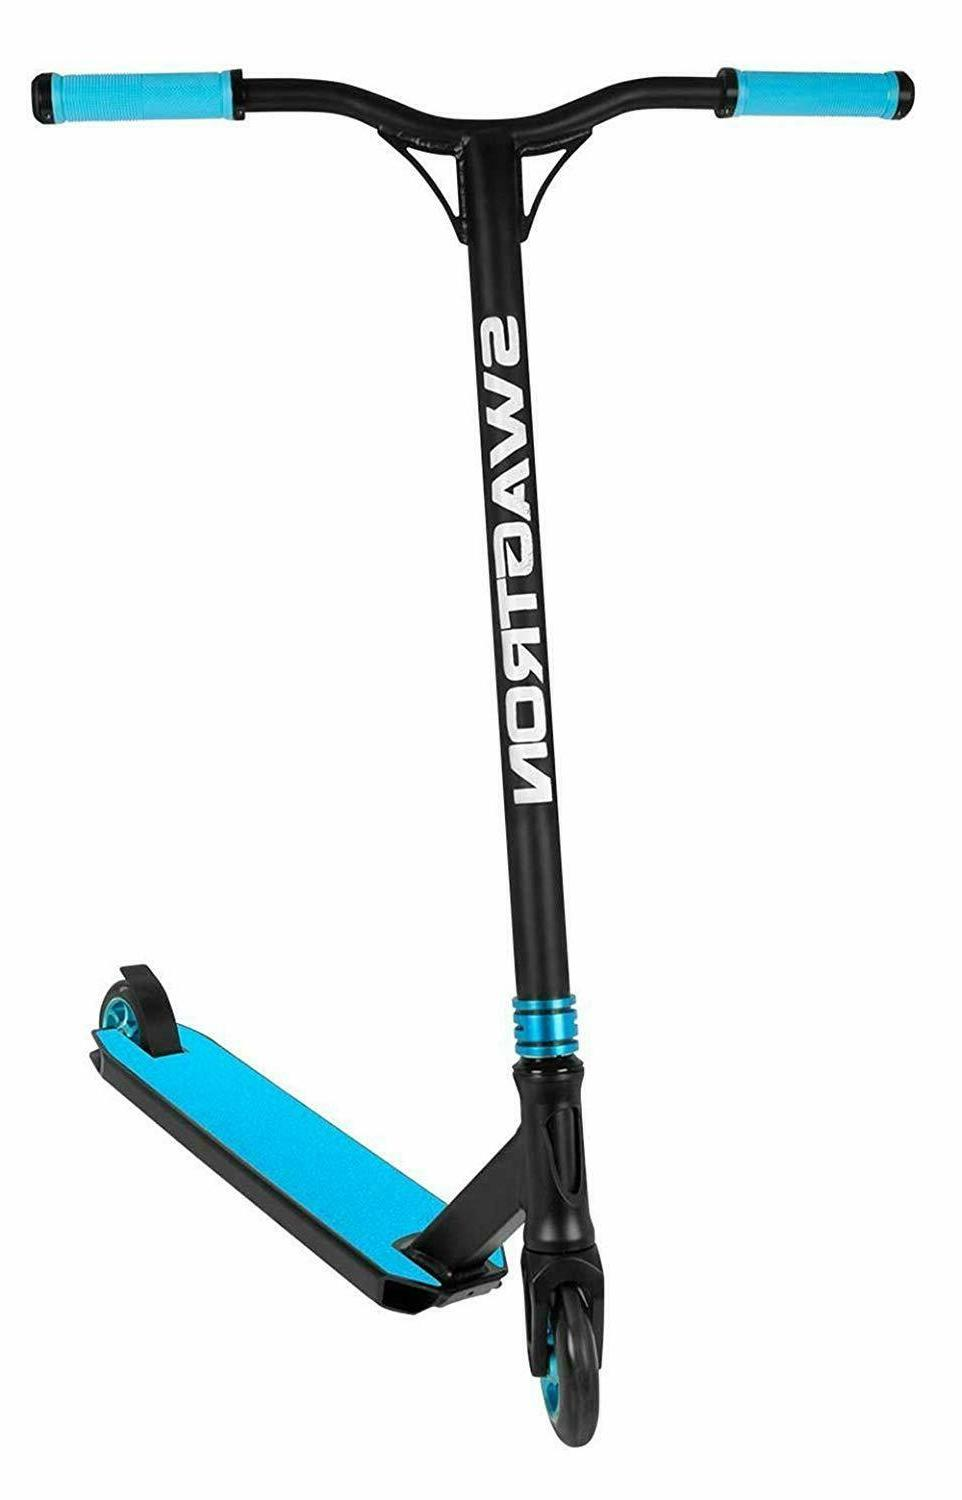 Swagtron Scooter – Freestyle Stunt Scooter for Advanced